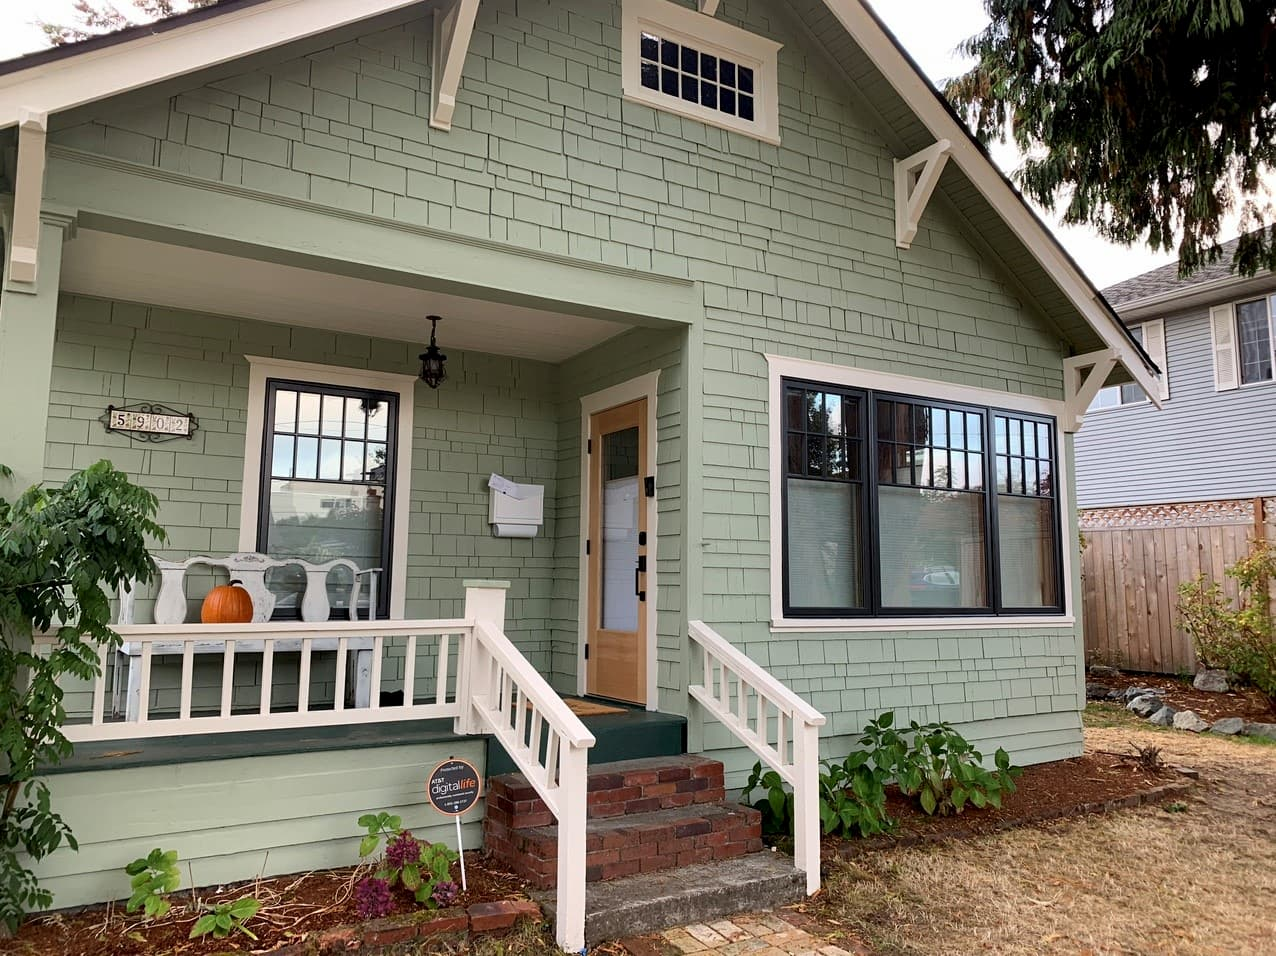 seattle home with new window replacement